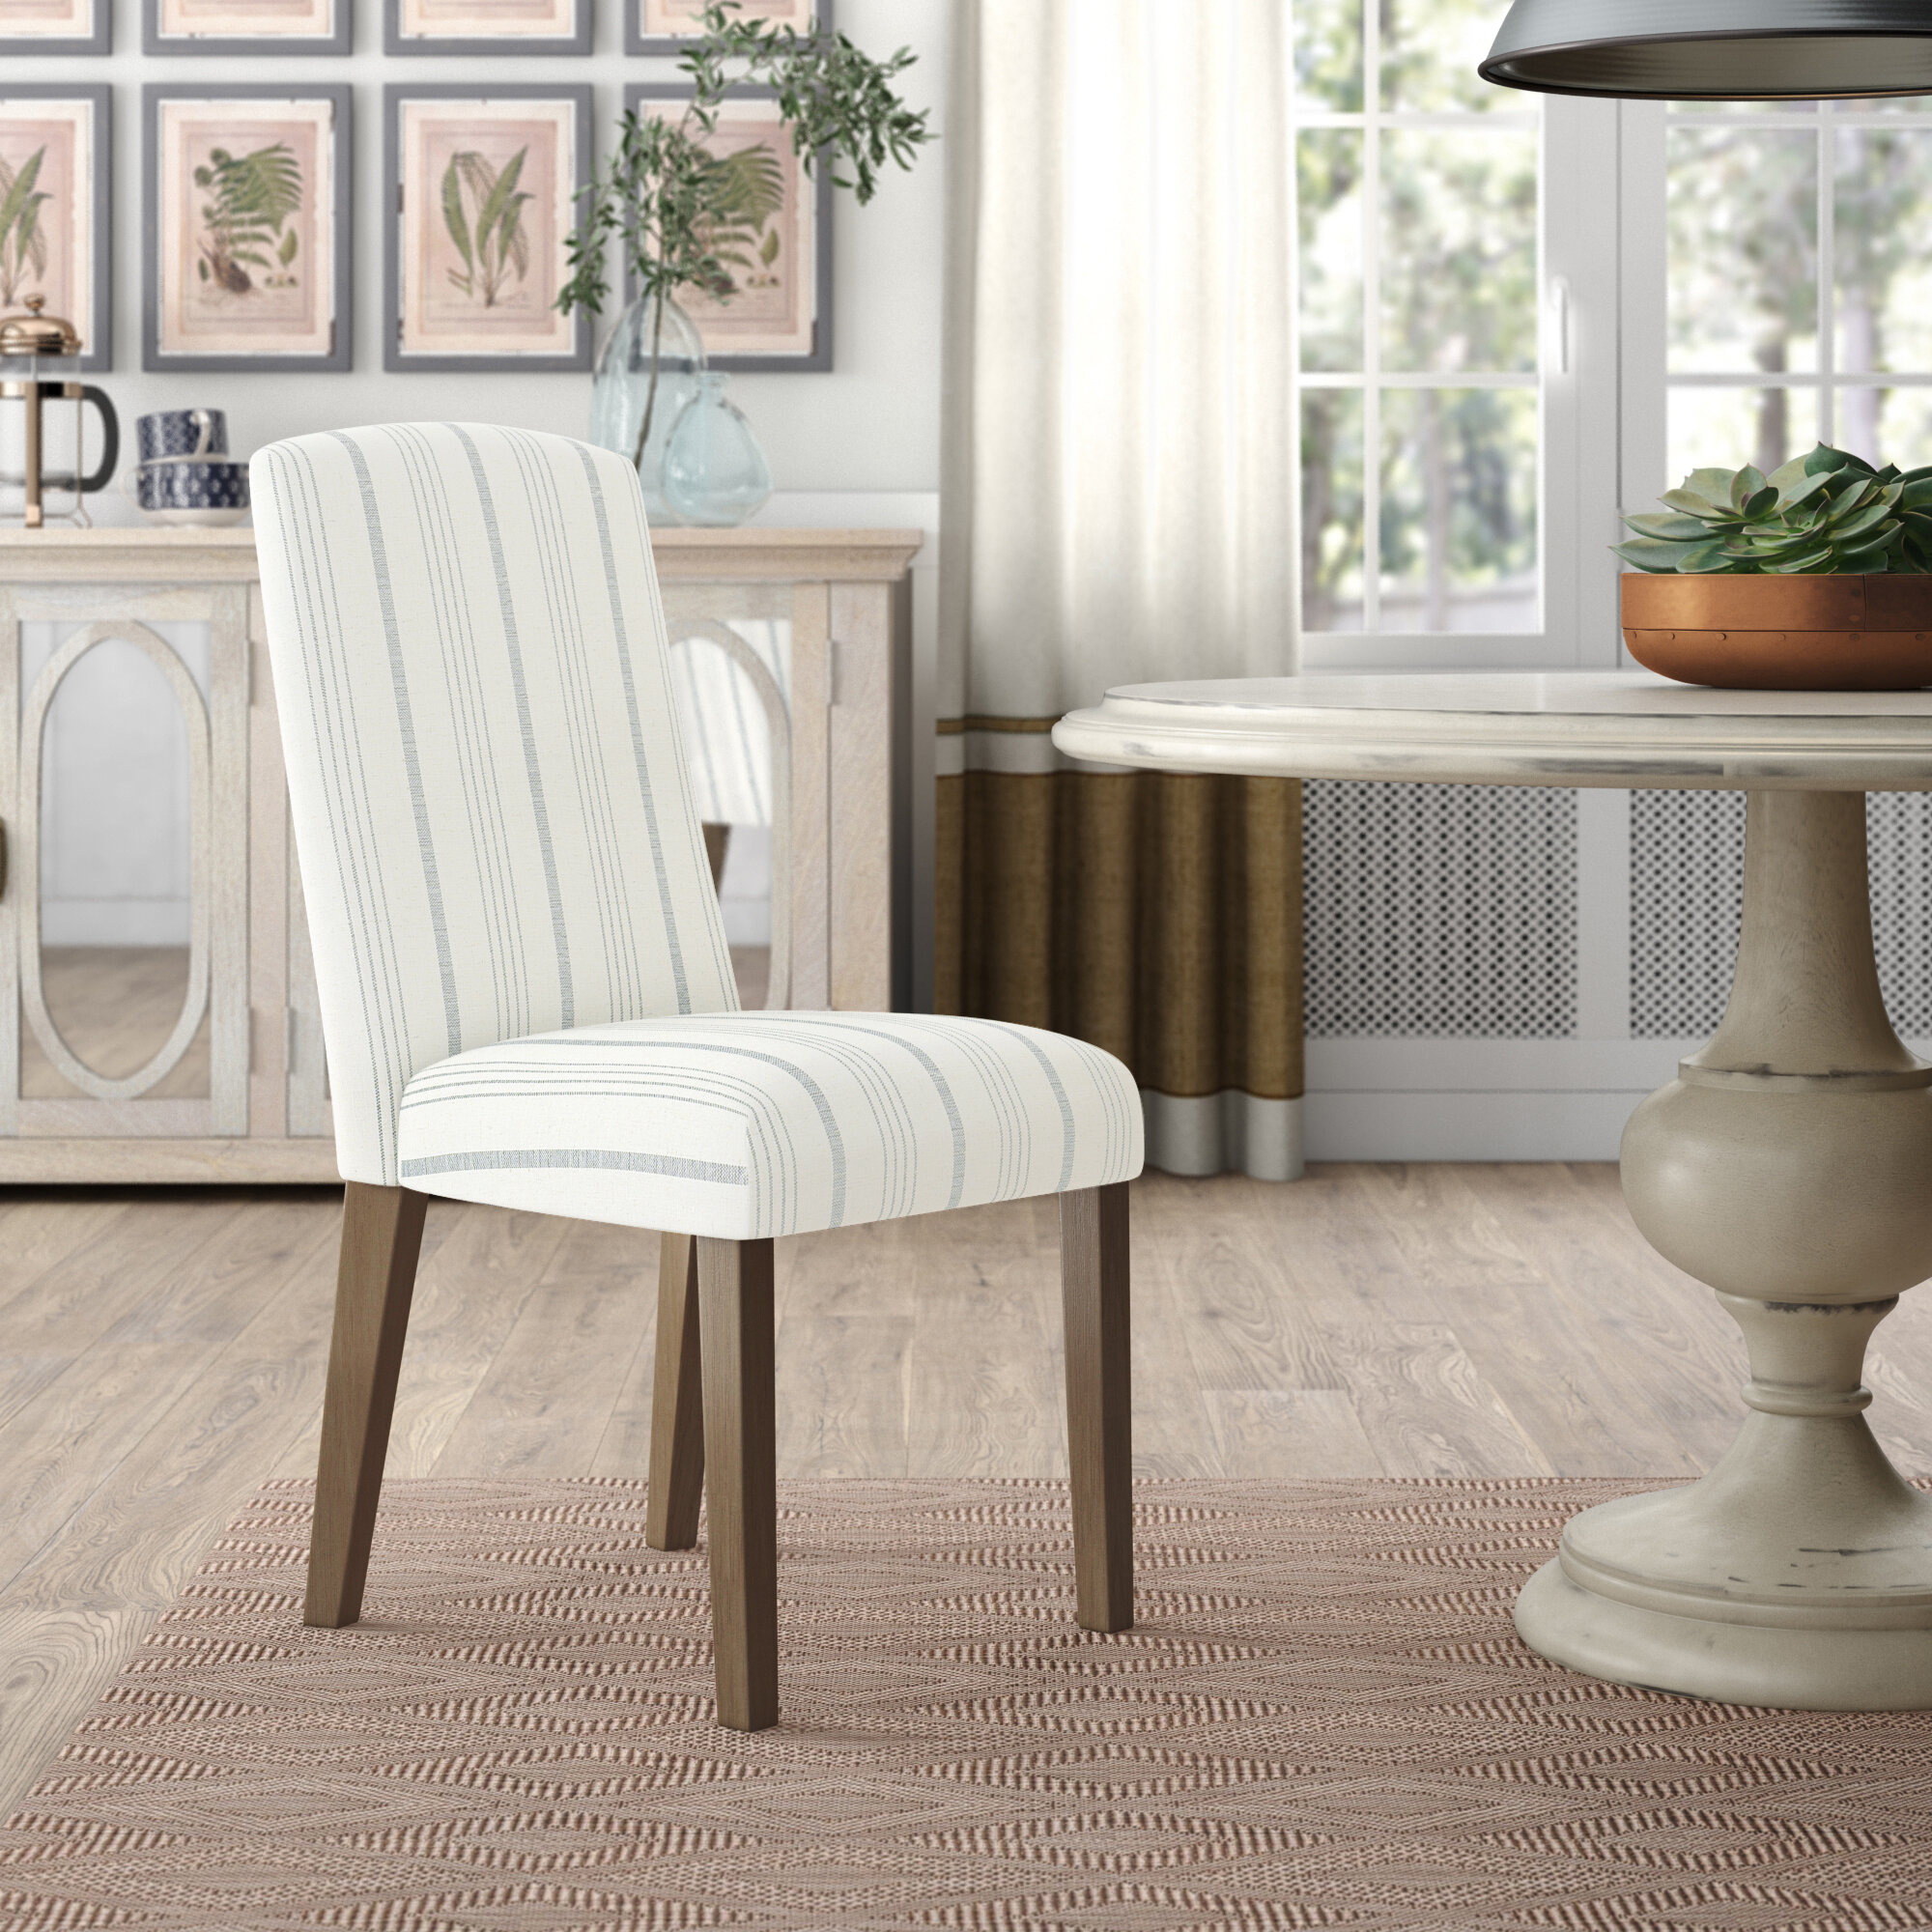 Coastal Upholstered Kitchen & Dining Chairs You'Ll Love In With Regard To Bob Stripe Upholstered Dining Chairs (Set Of 2) (View 6 of 15)